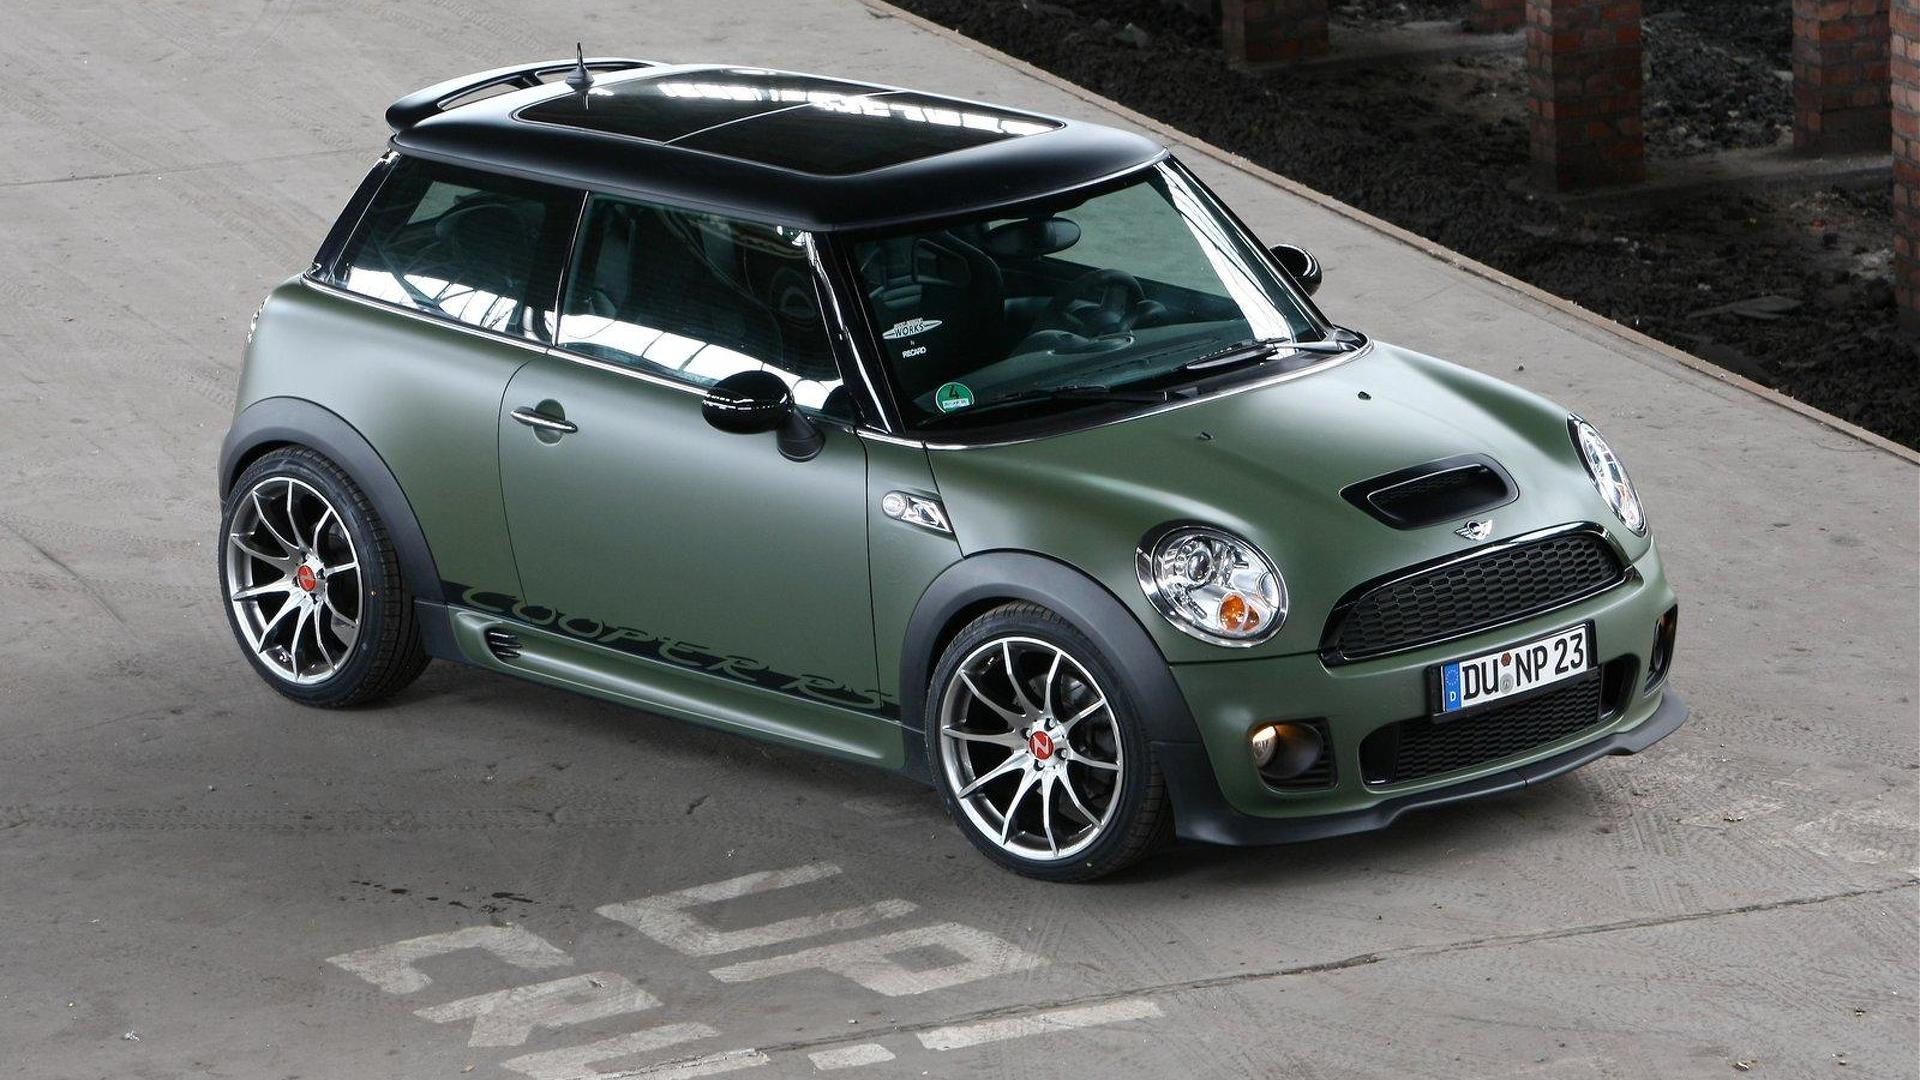 nowack tunes mini cooper s and jcw up to 260 ps. Black Bedroom Furniture Sets. Home Design Ideas